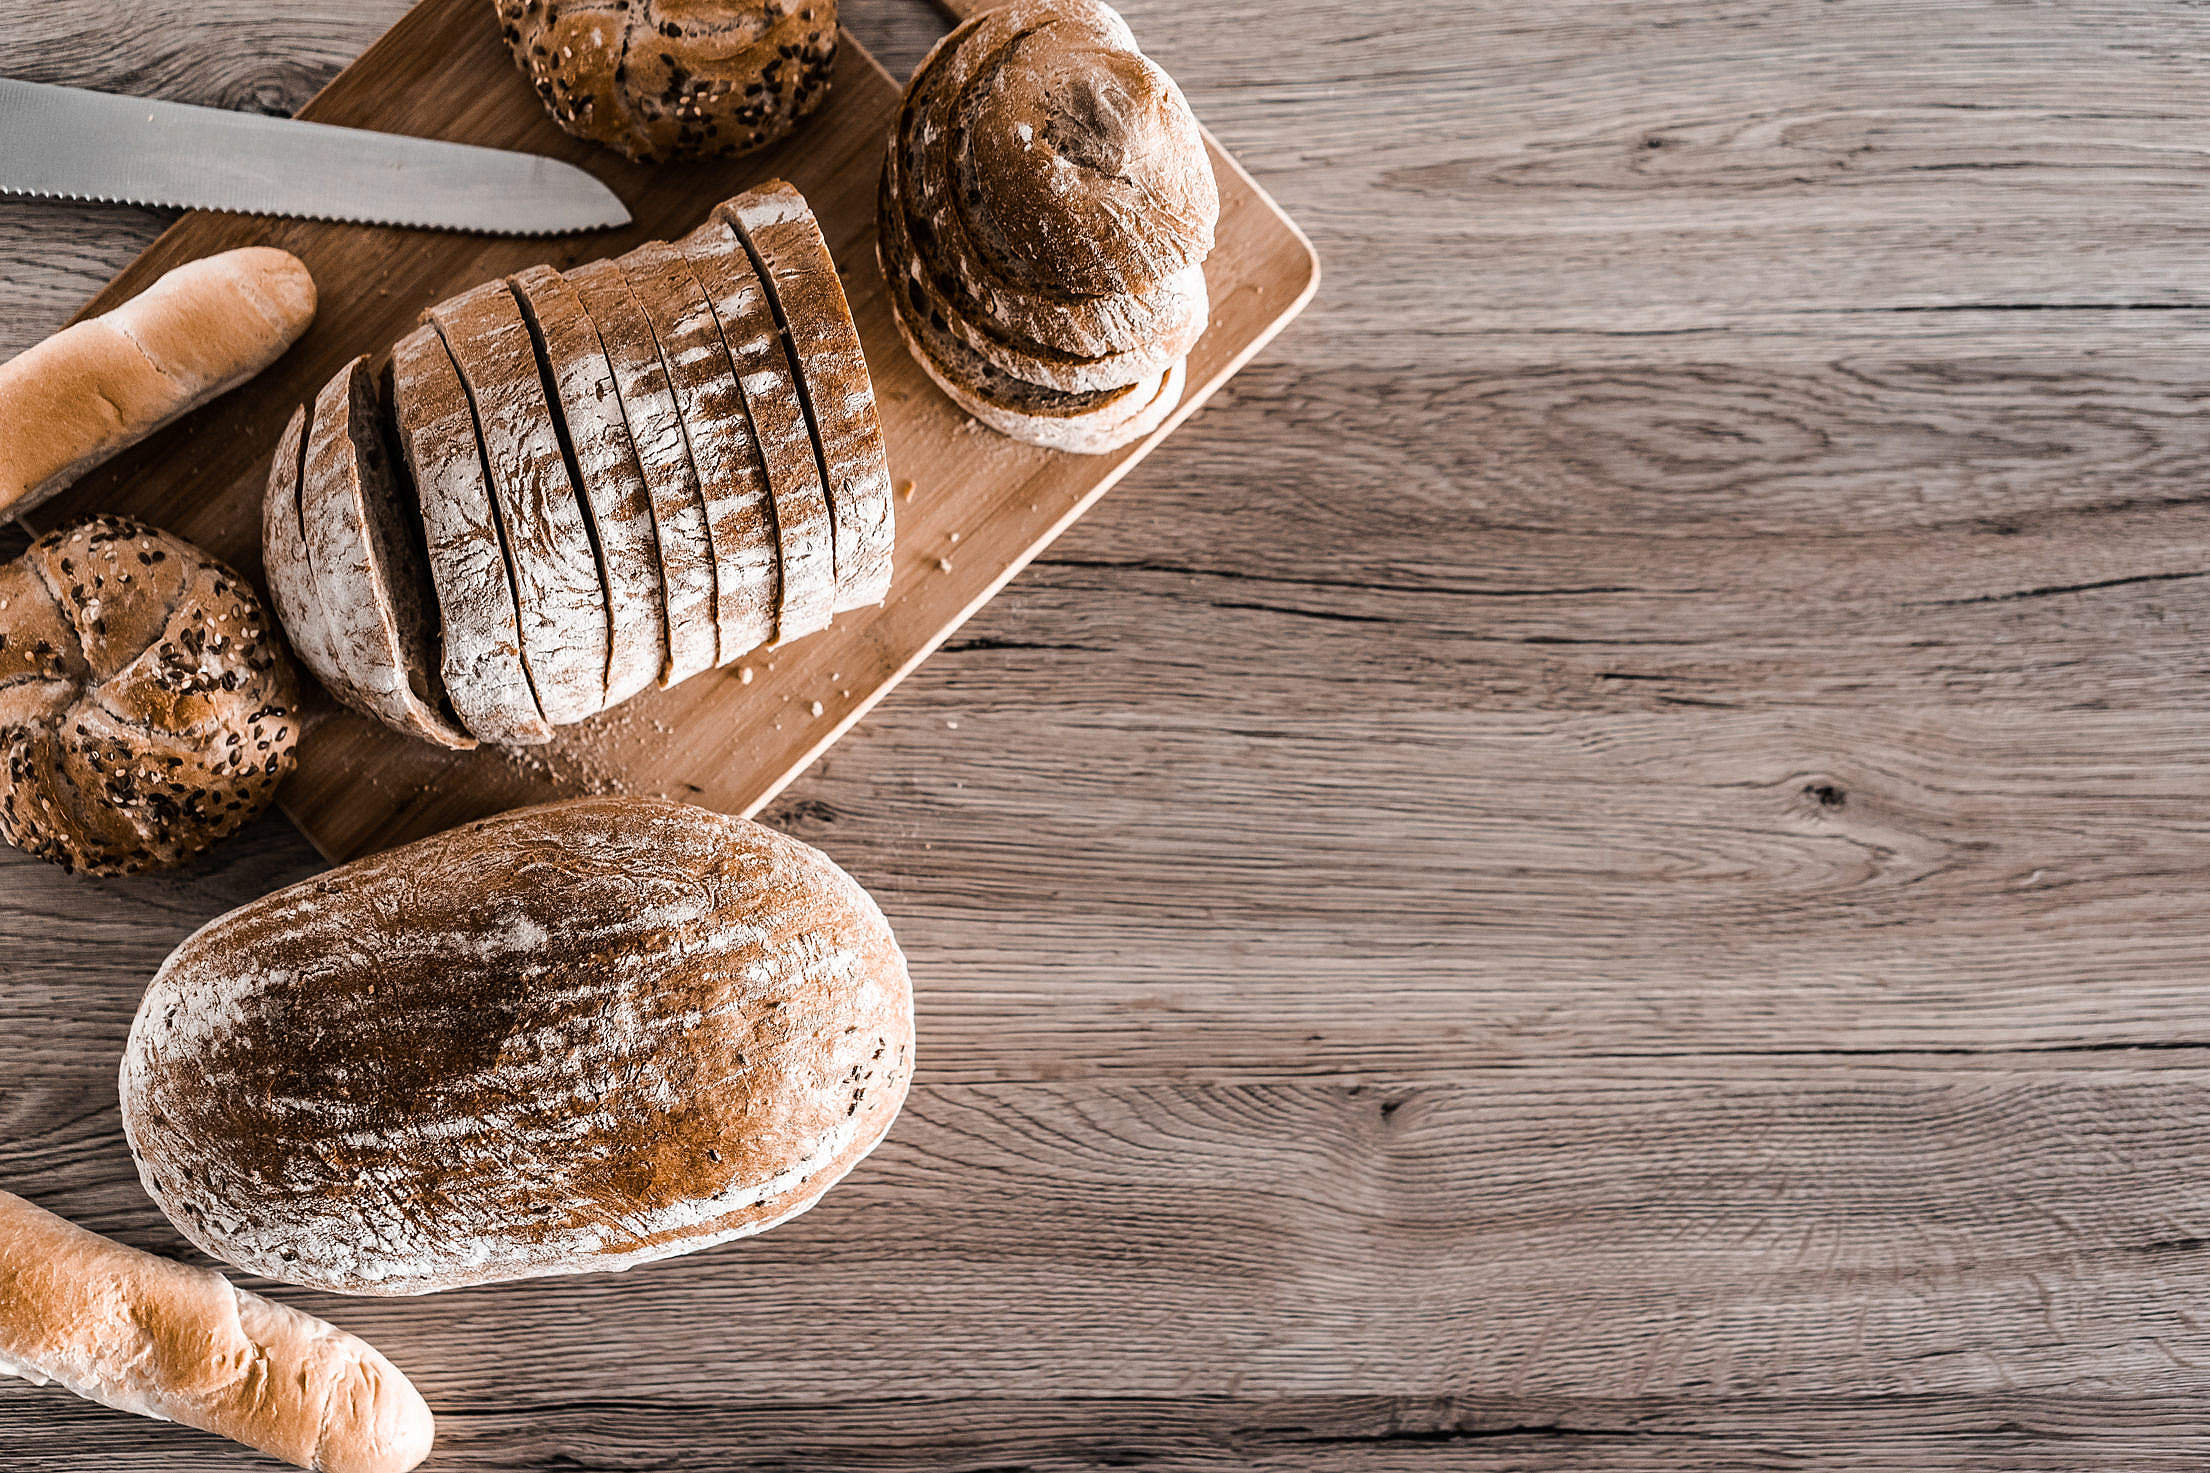 Download Bread and Baked Goods with Place for Text Free Stock Photo